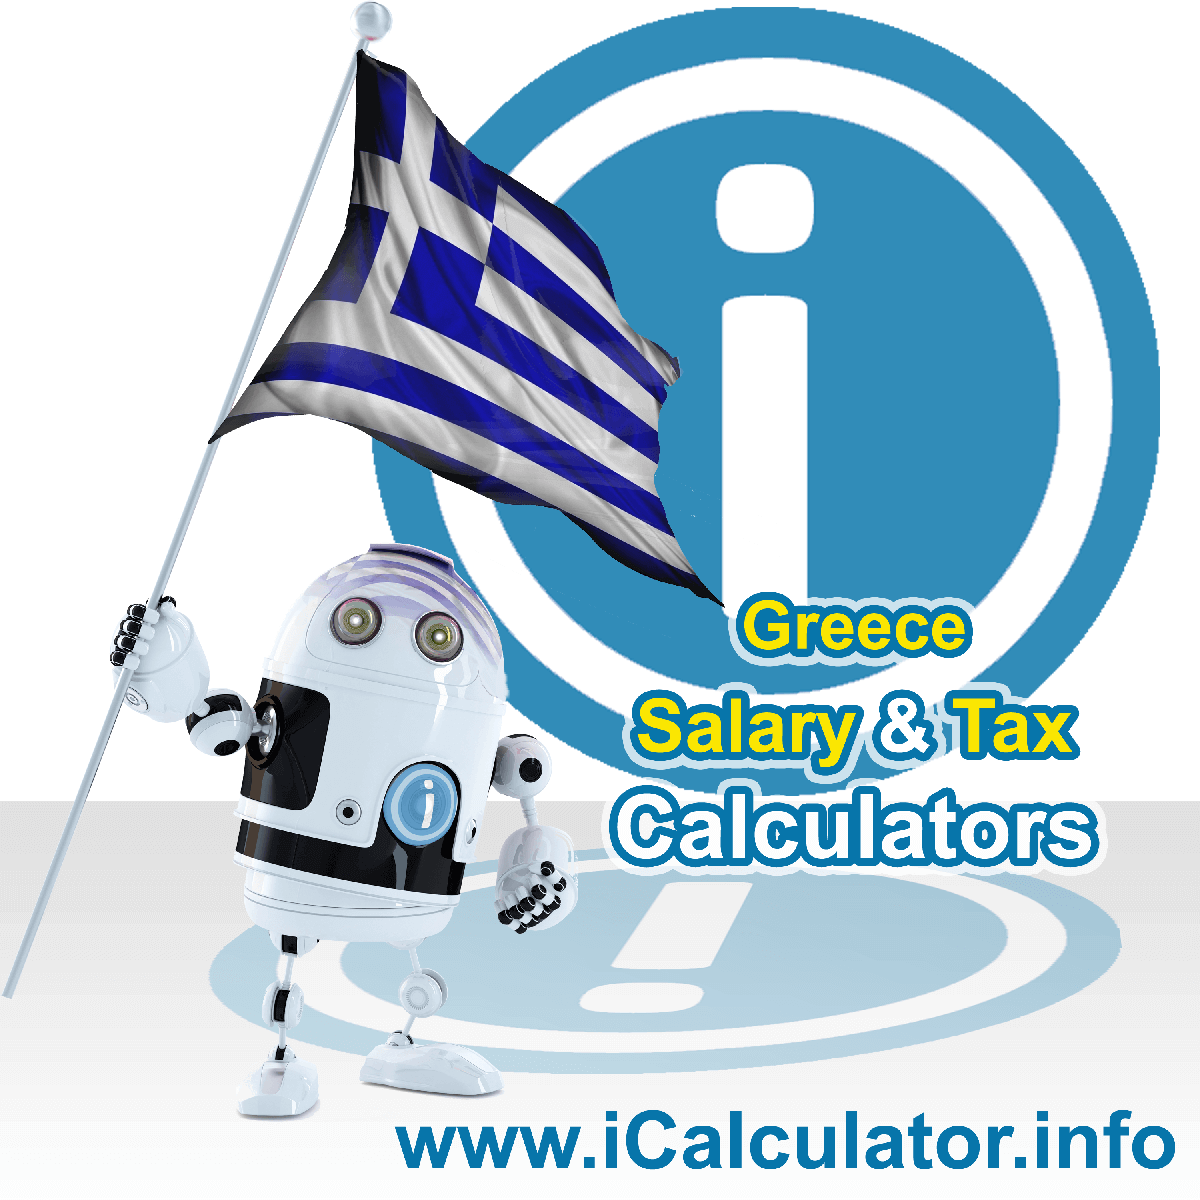 Greece Wage Calculator. This image shows the Greece flag and information relating to the tax formula for the Greece Tax Calculator